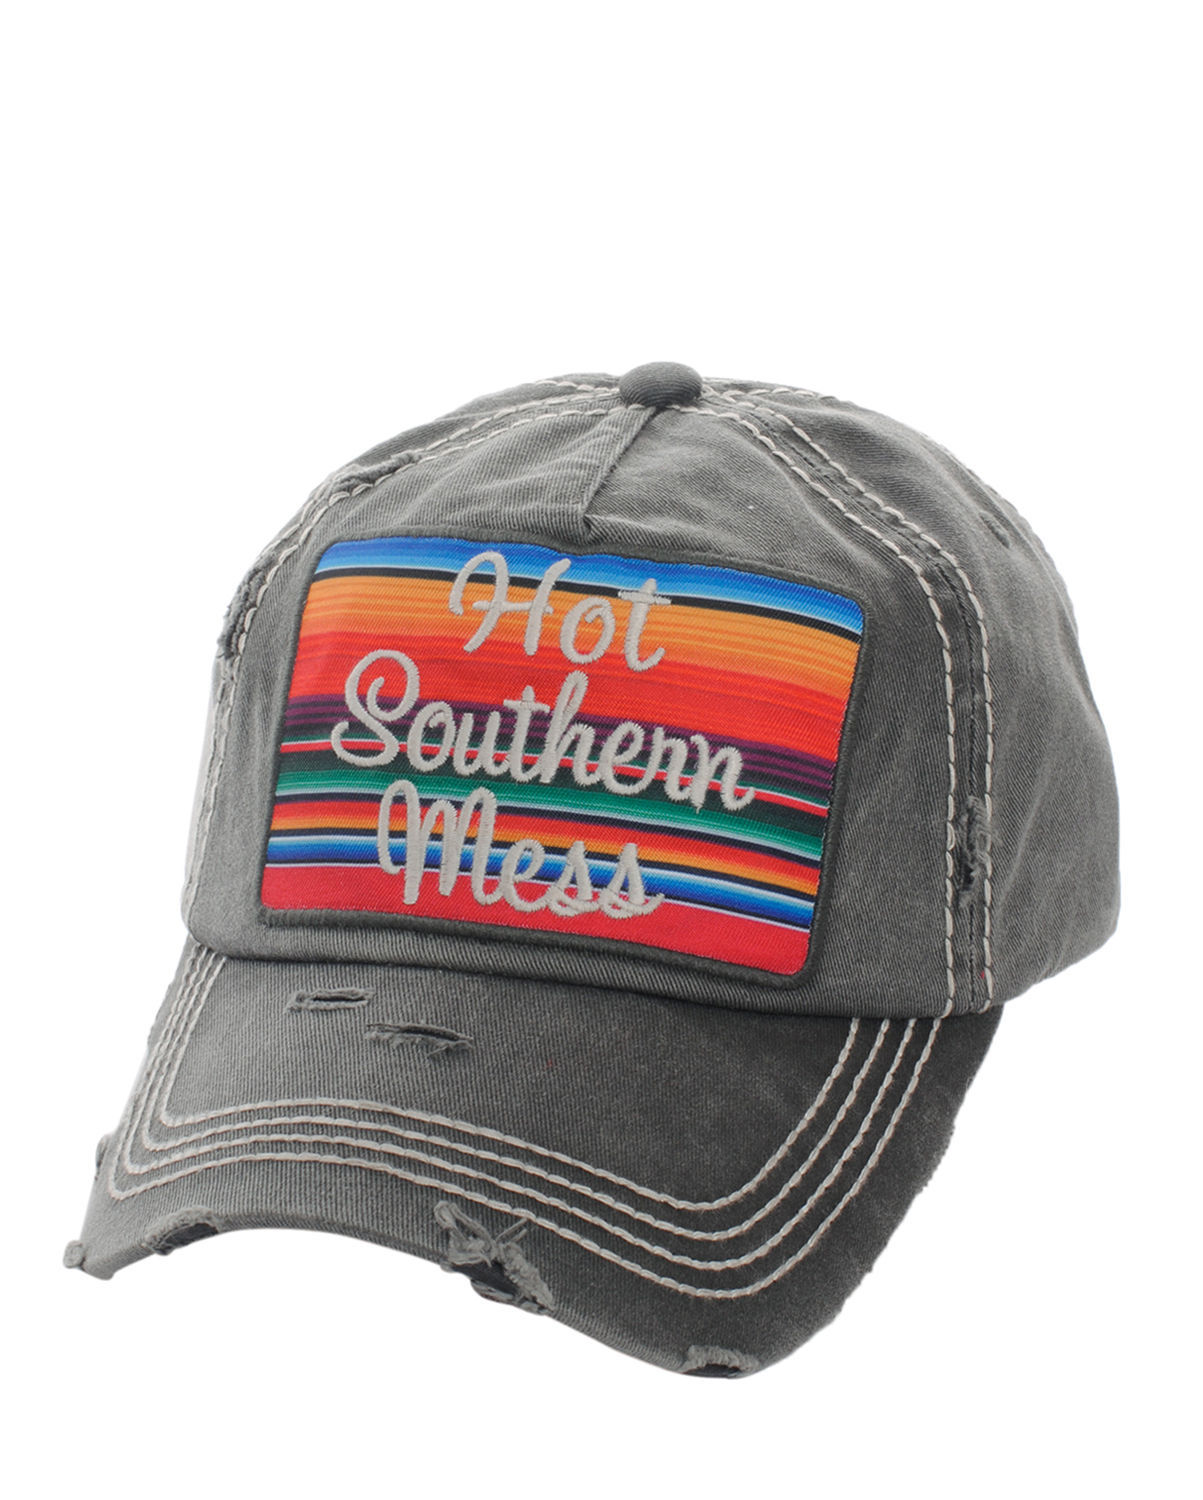 Distressed Country Vintage Style Hot Southern Mess Baseball Cap Hat Black